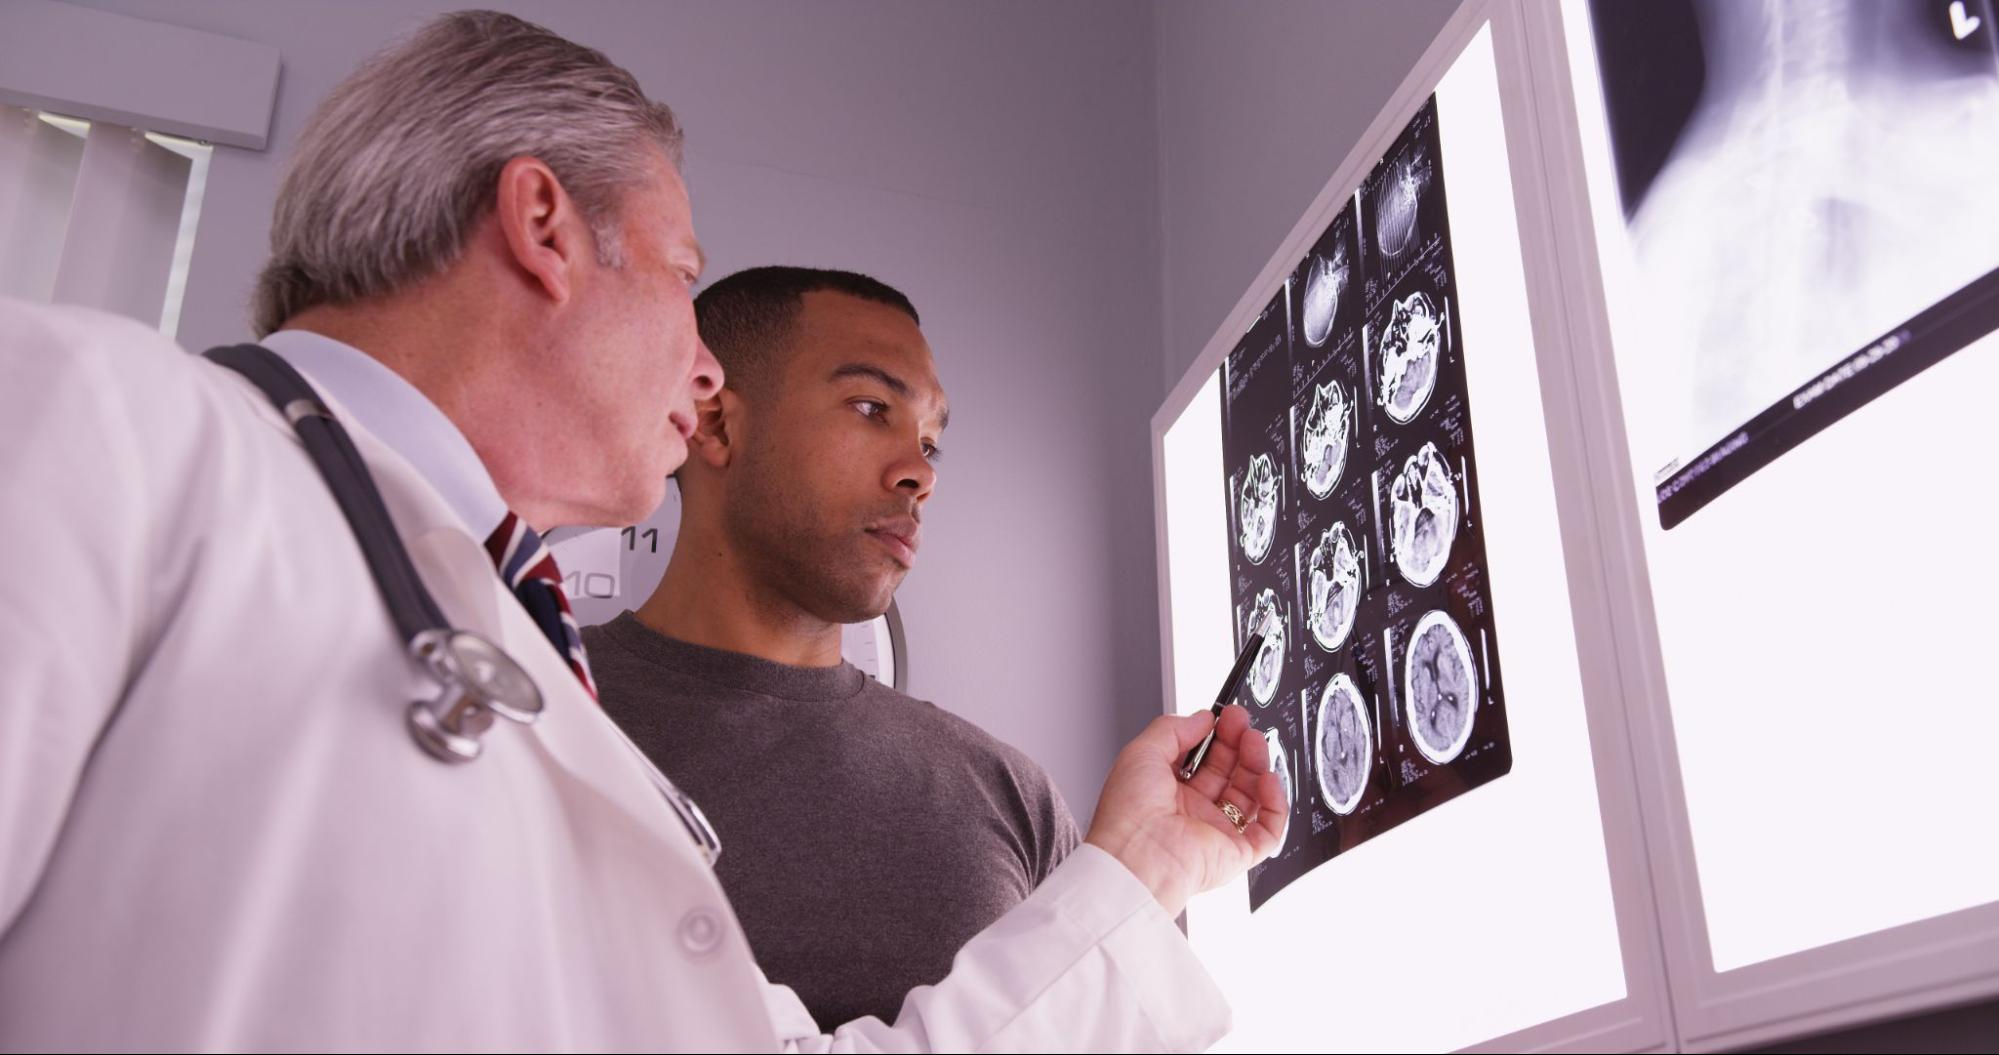 Doctor discussing X-ray results with a patient